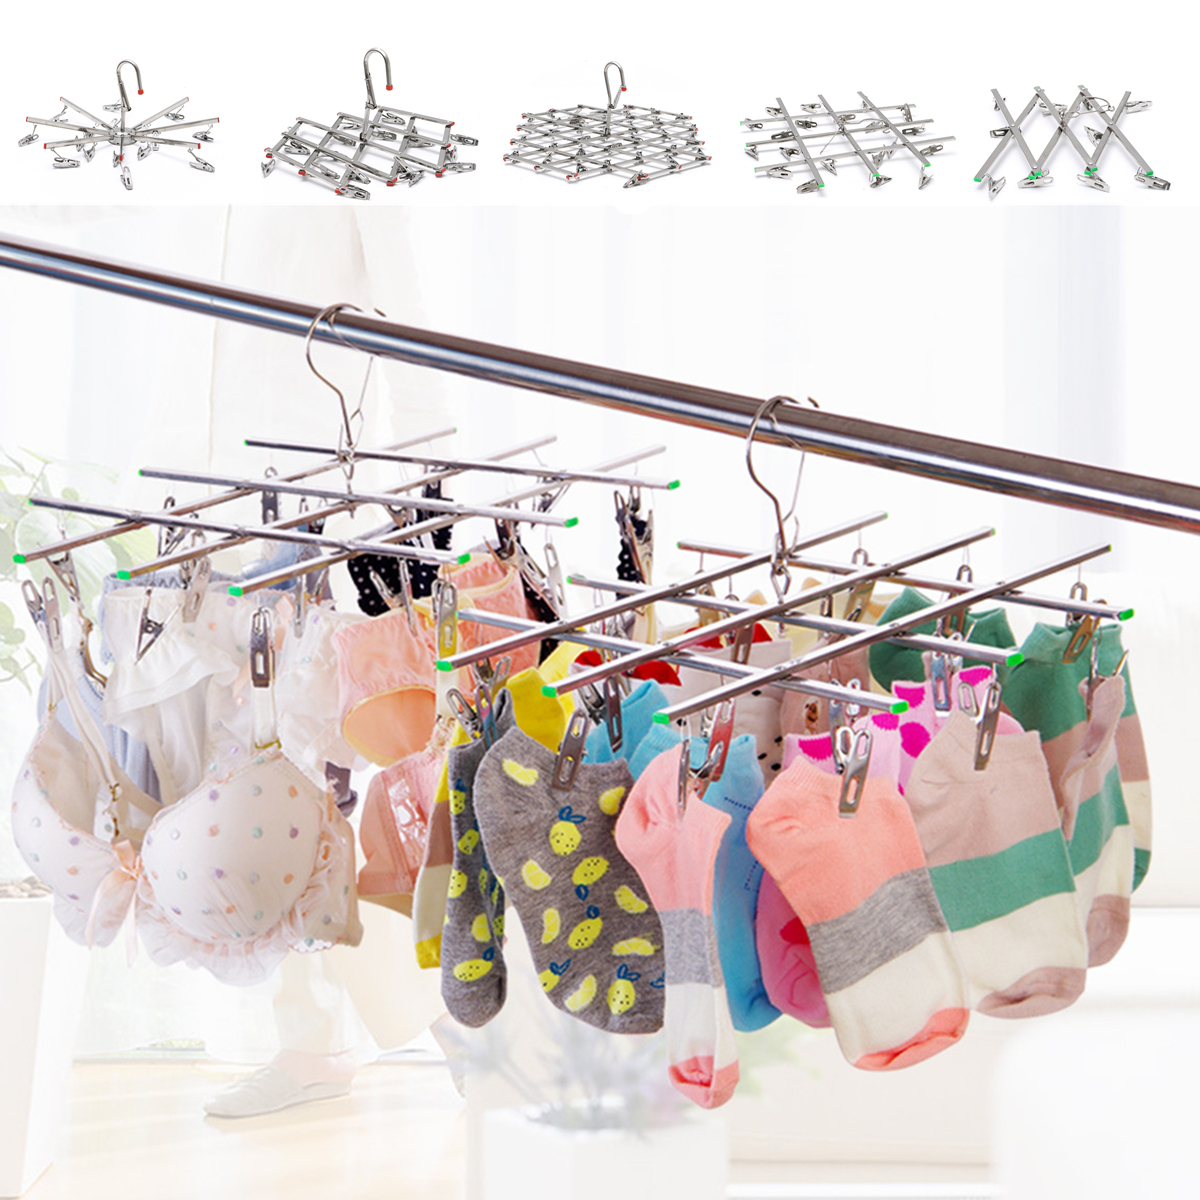 10-35Clips Foldable Cloth Hanger Outdoor Travel Home Underwear S